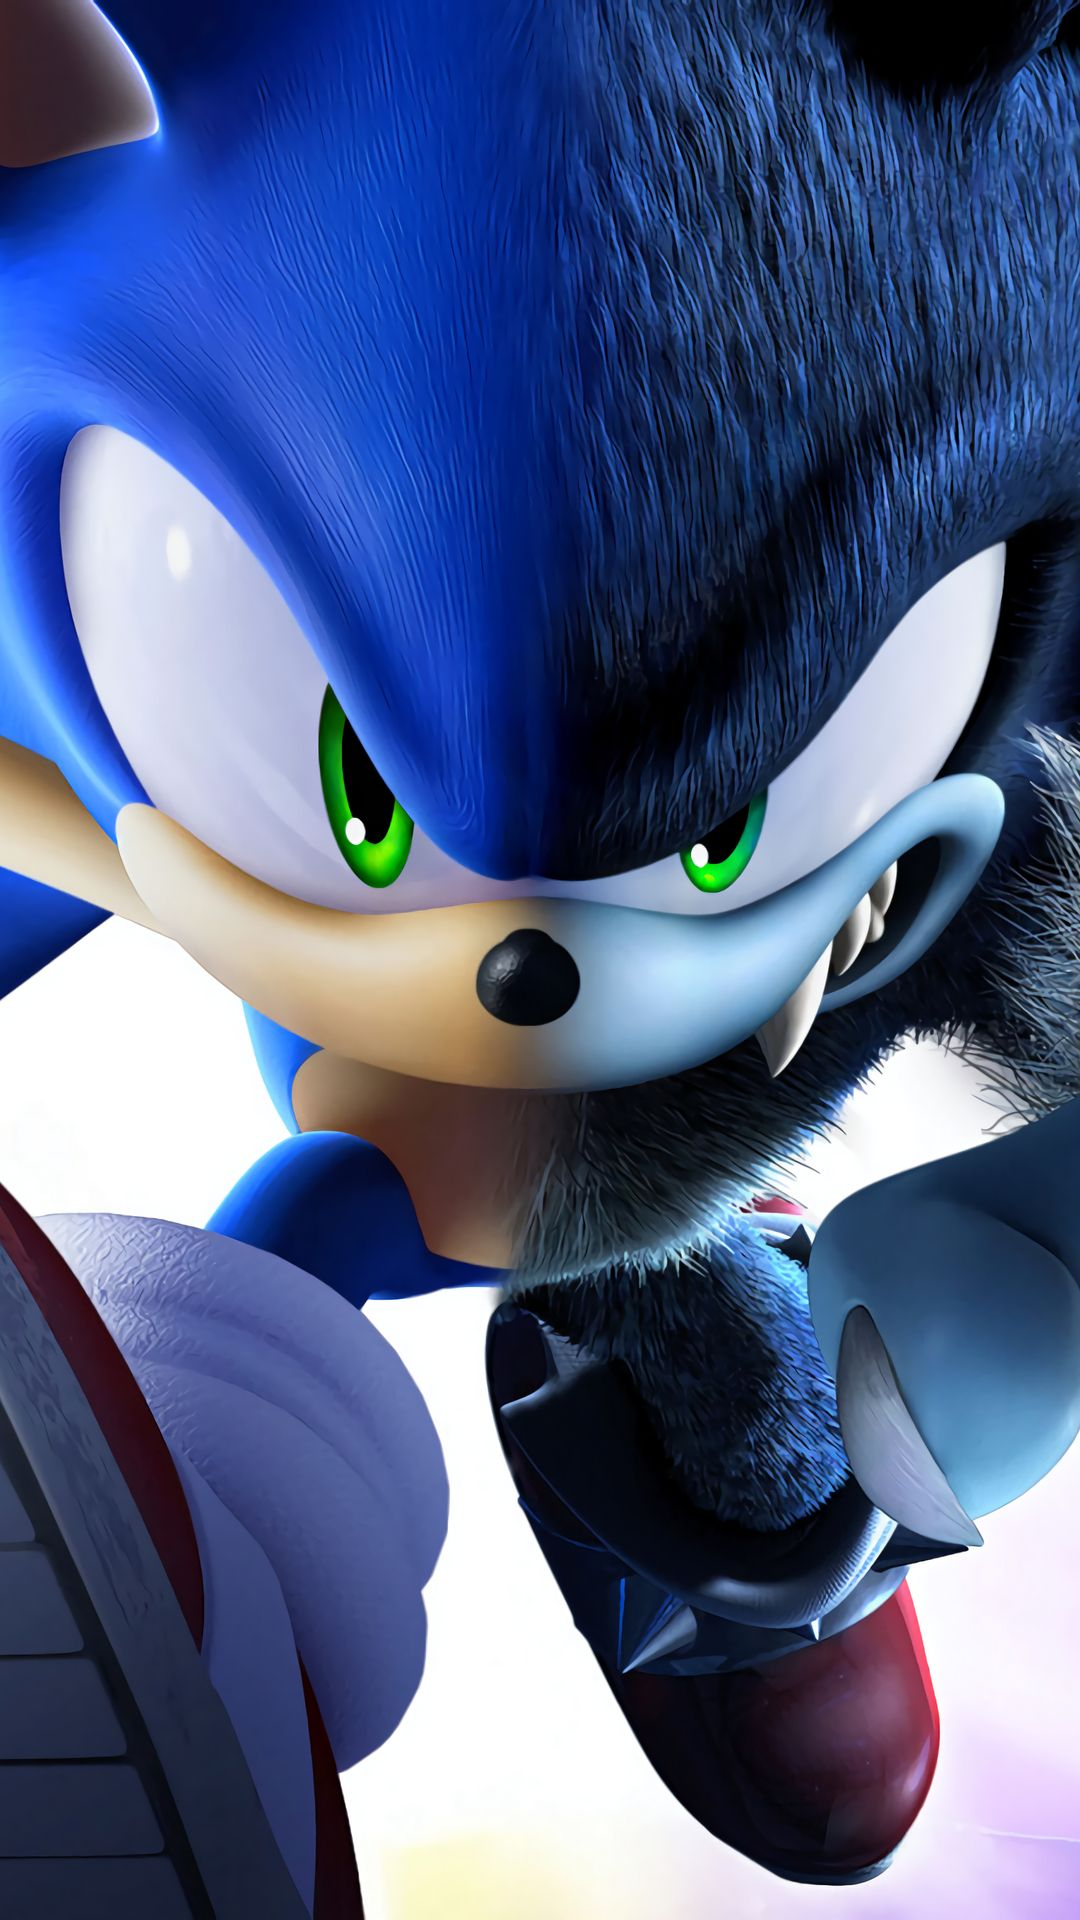 Sonic The Hedgehog Mobile HD Wallpaper in 2020 Sonic